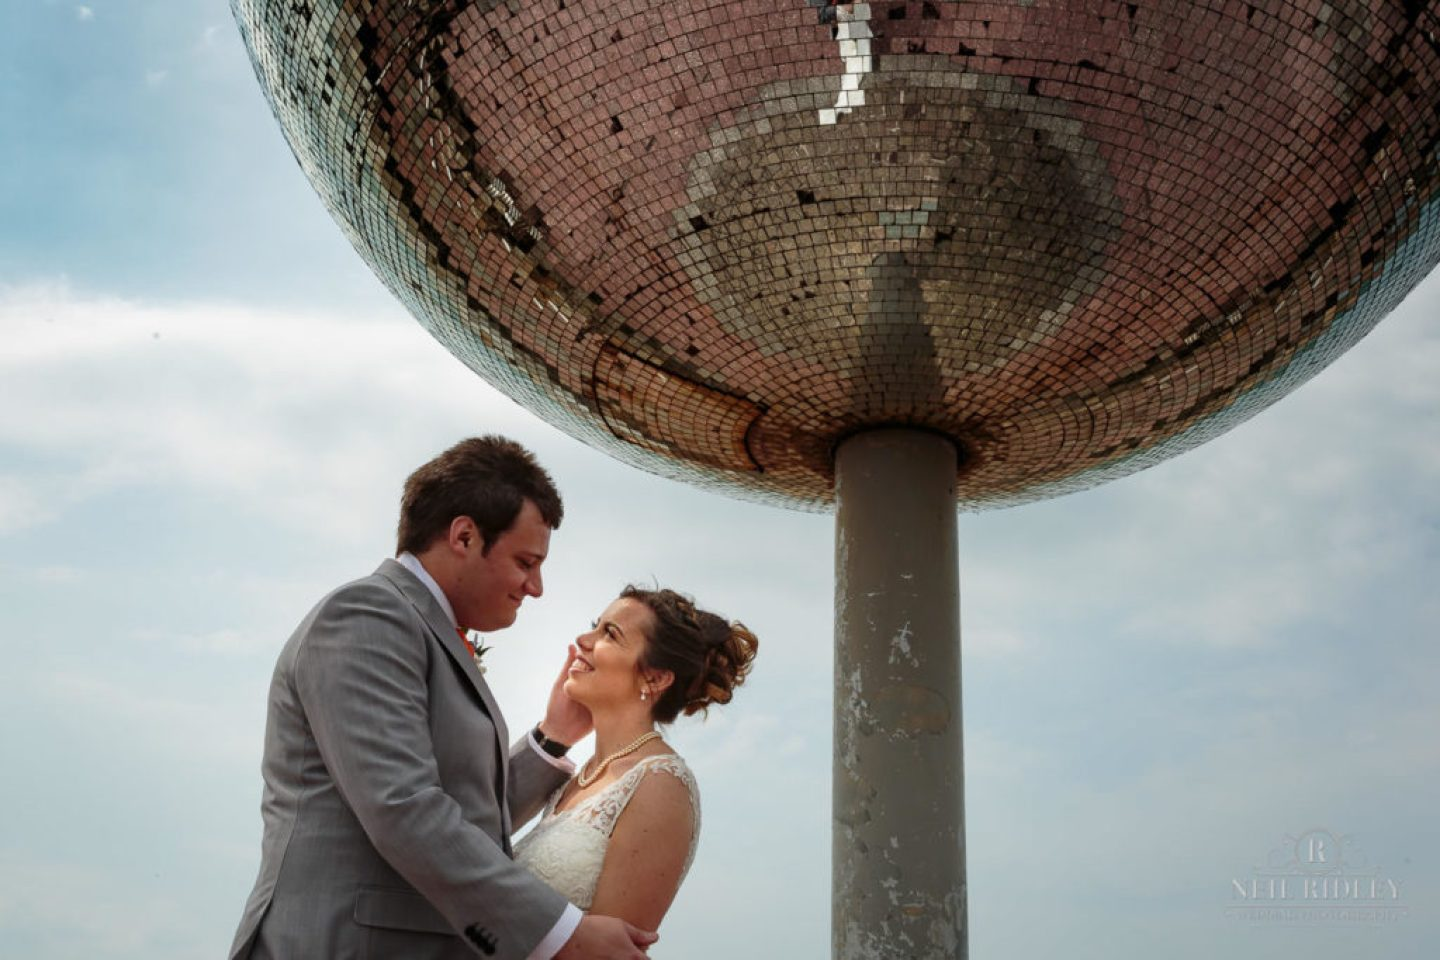 Bride and Groom at The Glitter ball on Blackpool Promenade